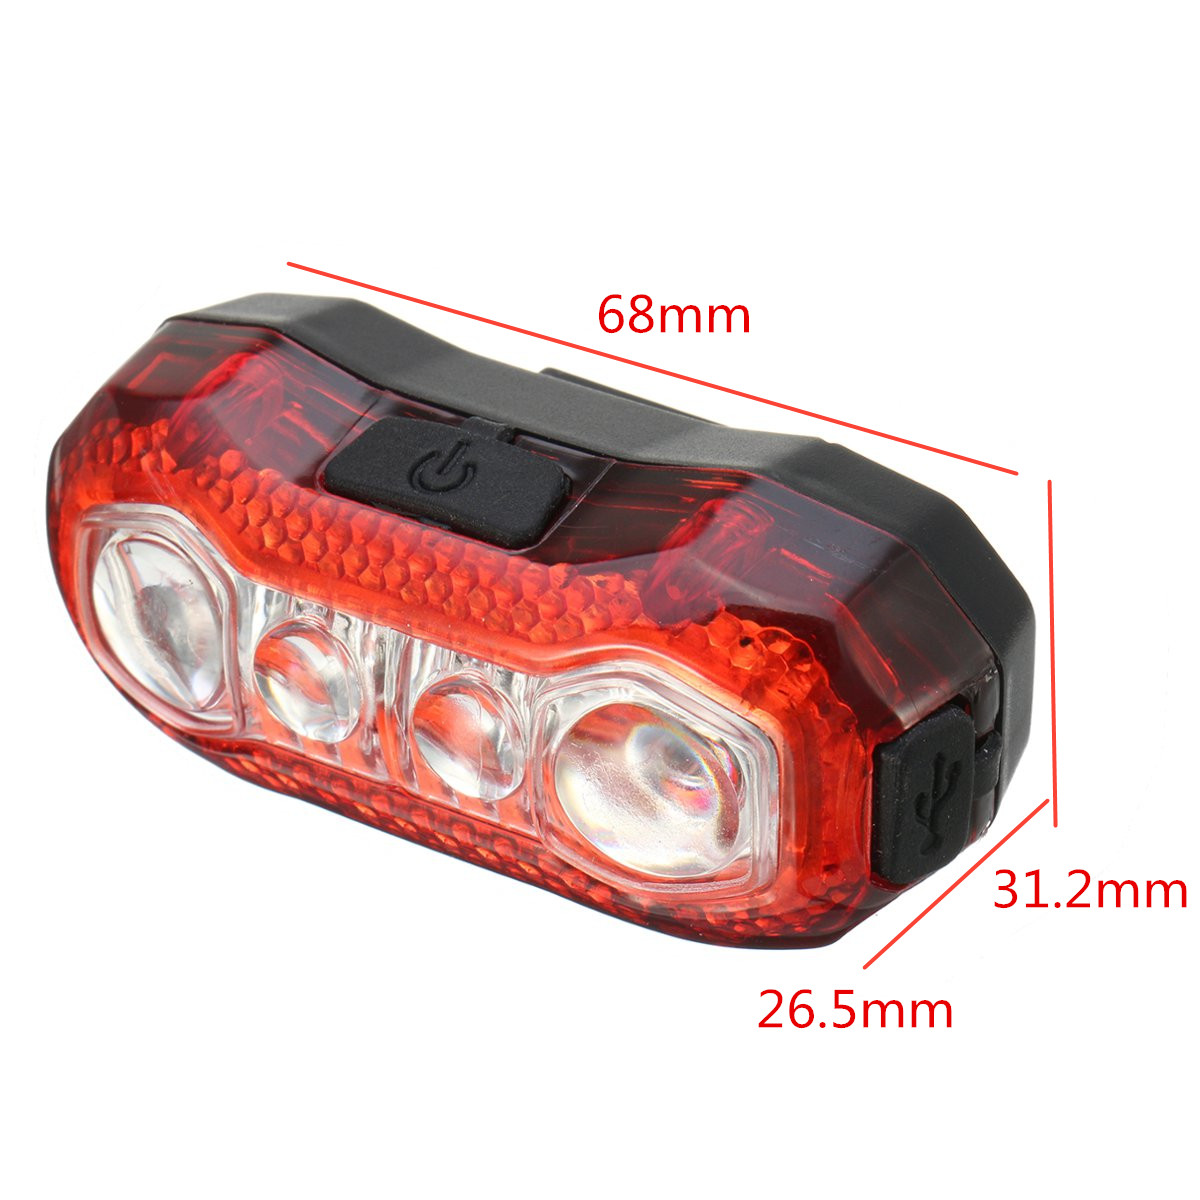 BIKIGHT 150LM Bicycle Light 4LED 5 Models USB Rechargeable Safety Front Tail Light